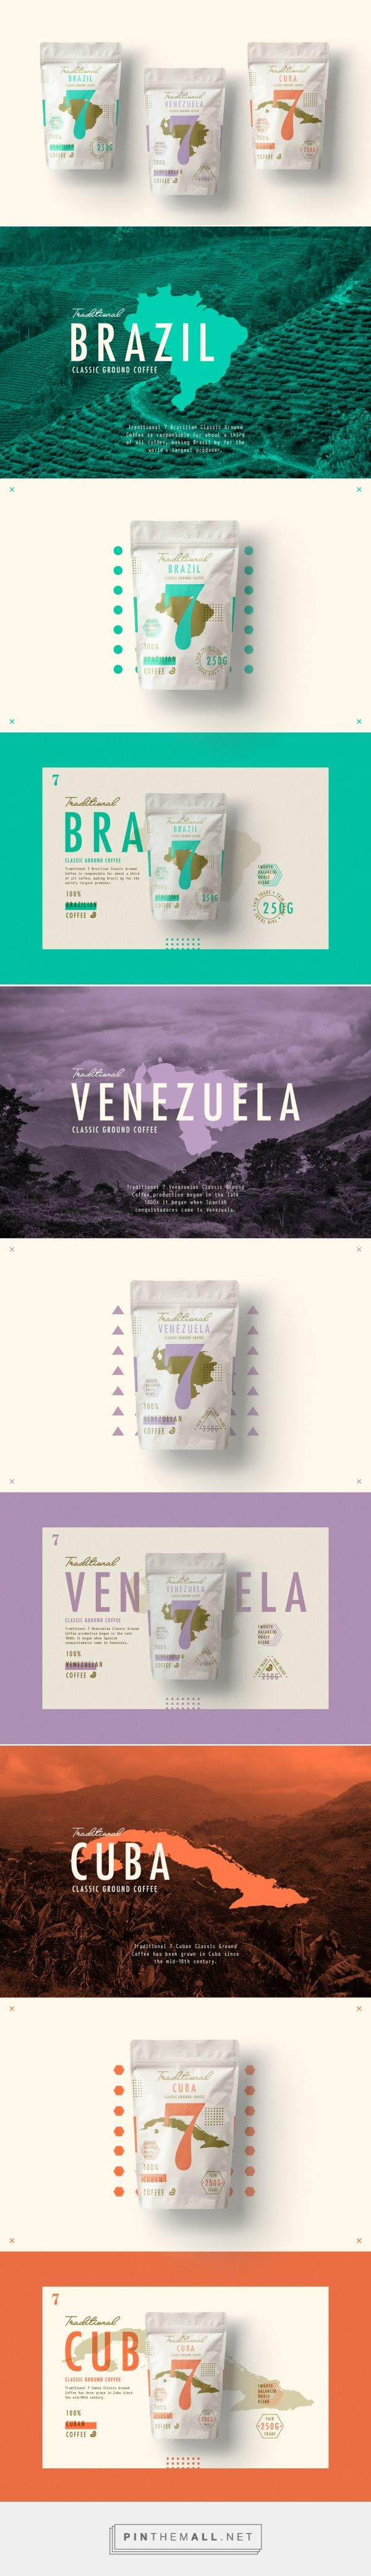 Traditional 7 Coffee packaging design by STUDIOJQ - http://www.packagingoftheworld.com/2016/09/traditional-7-coffee.html